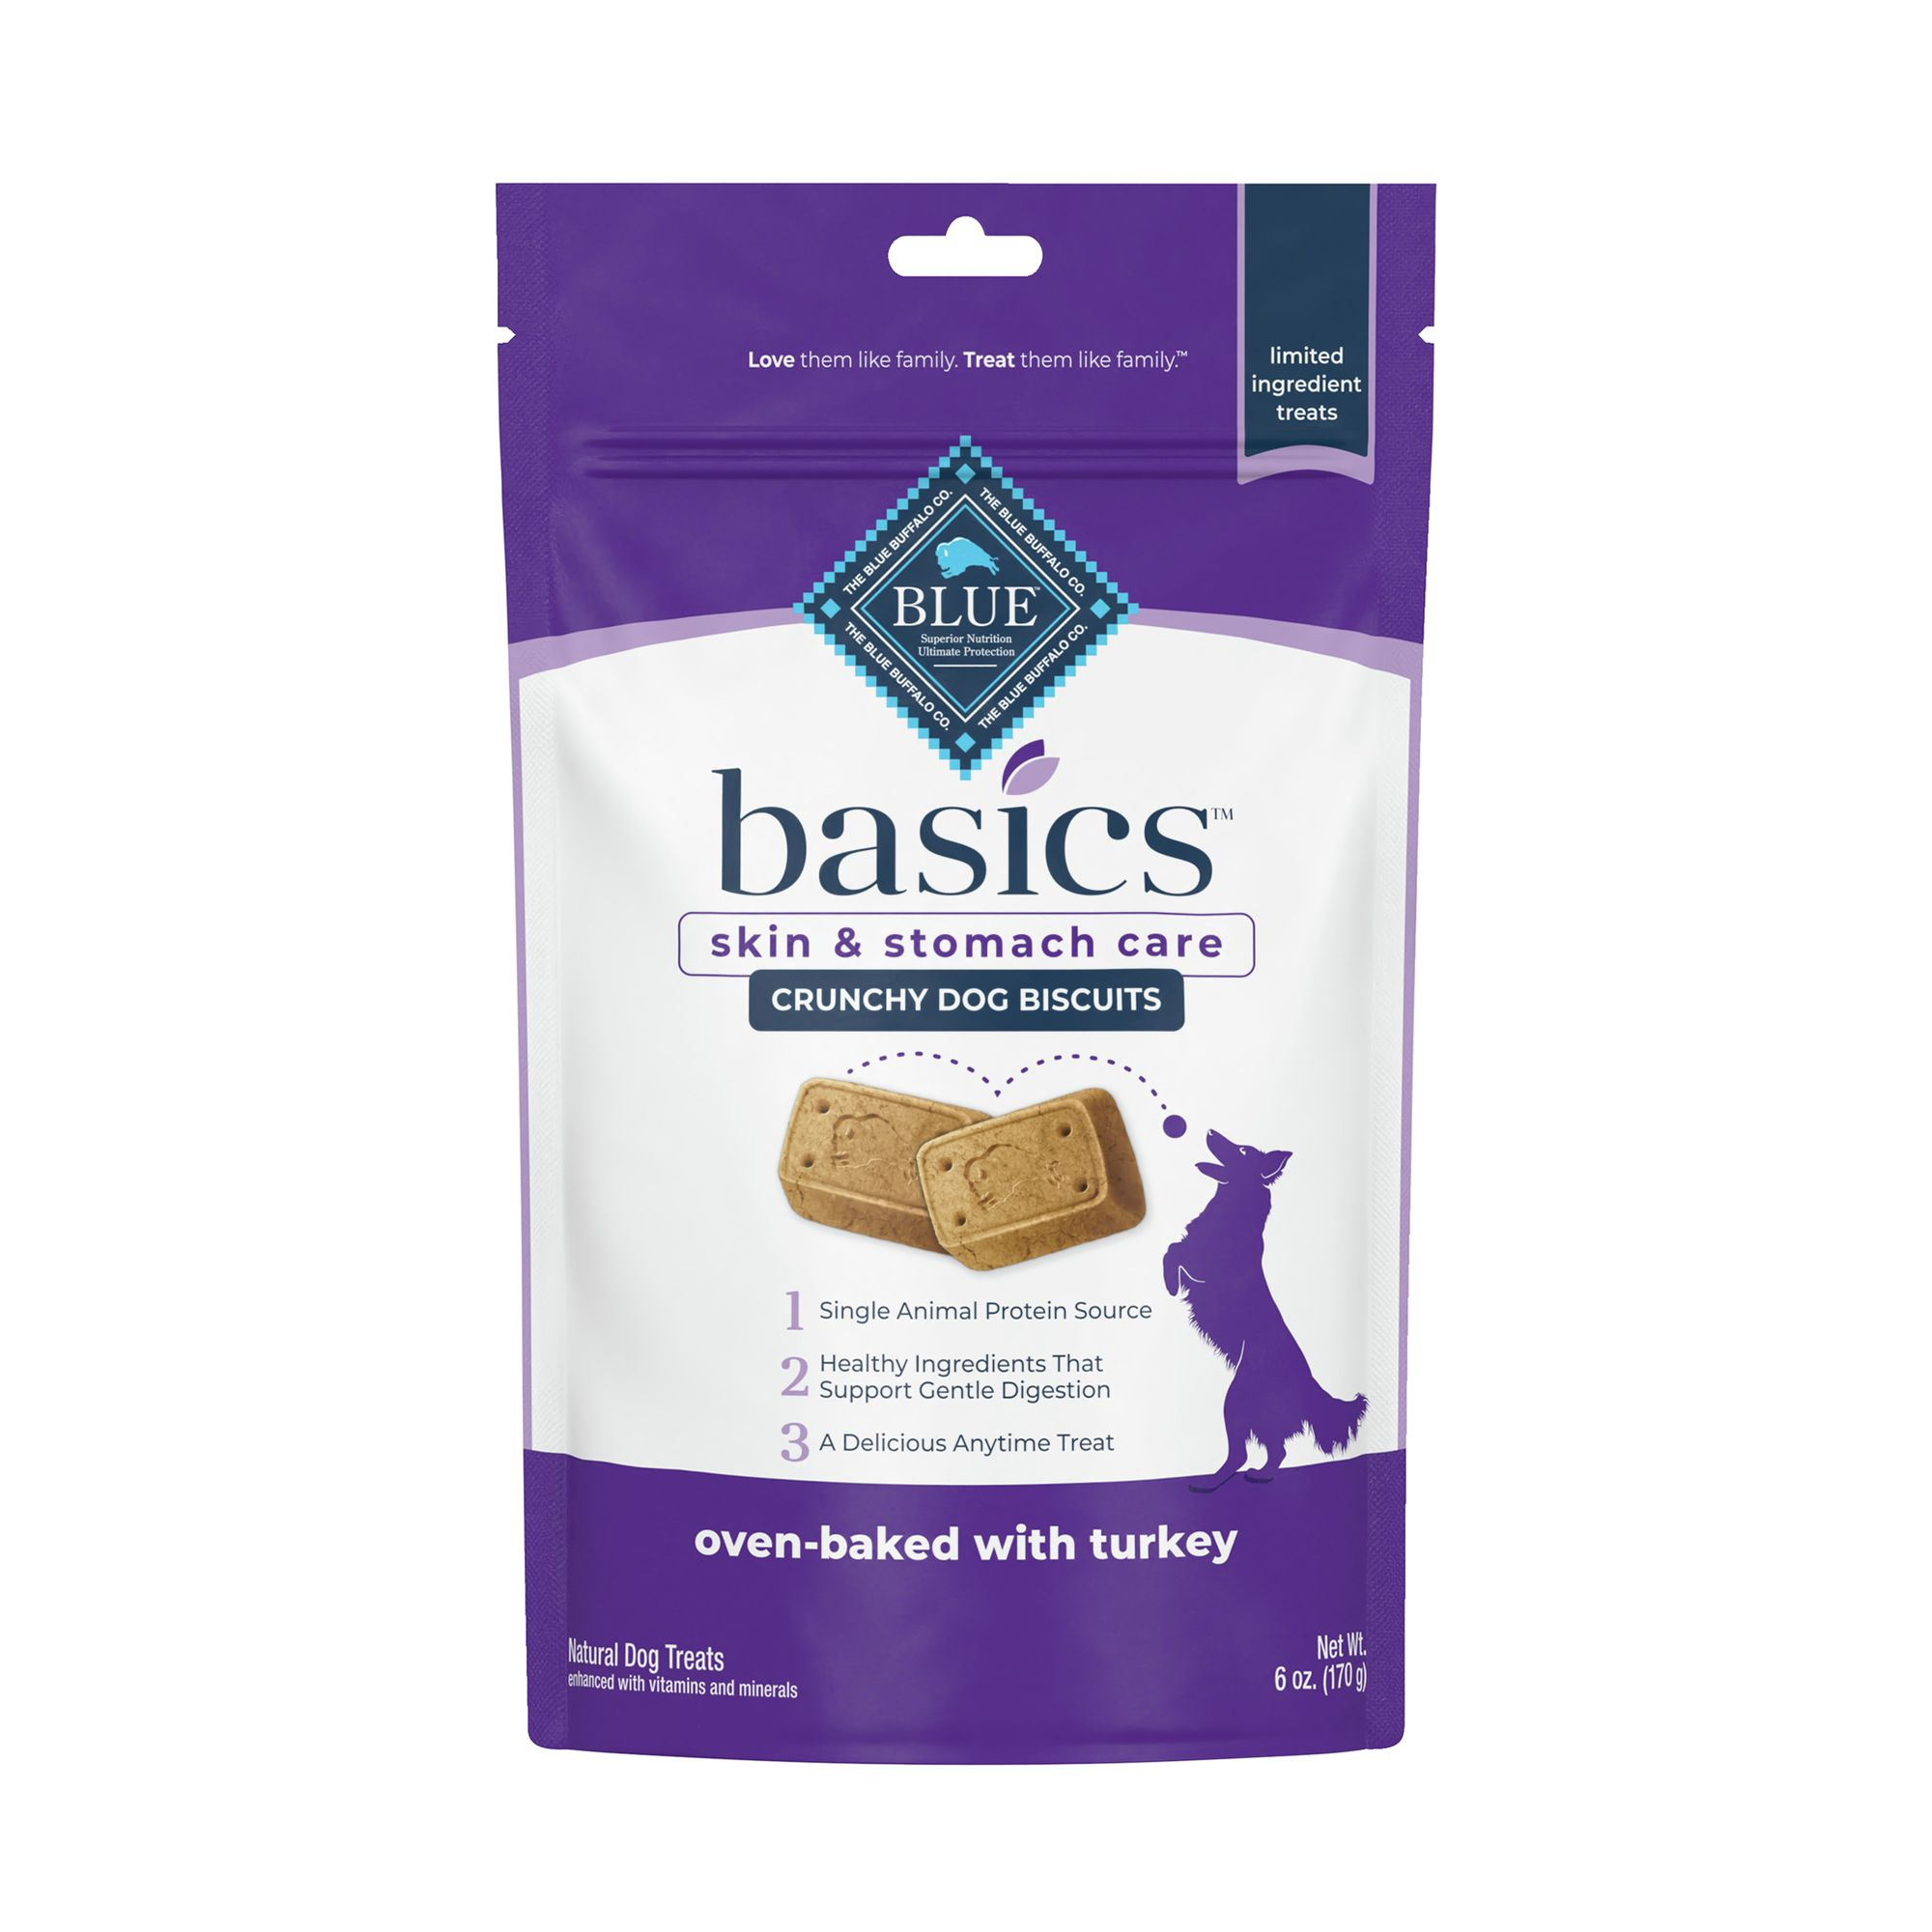 Blue Basics Biscuits Dog Treat Natural Limited Ingredient Size 6 Oz Blue Buffalo